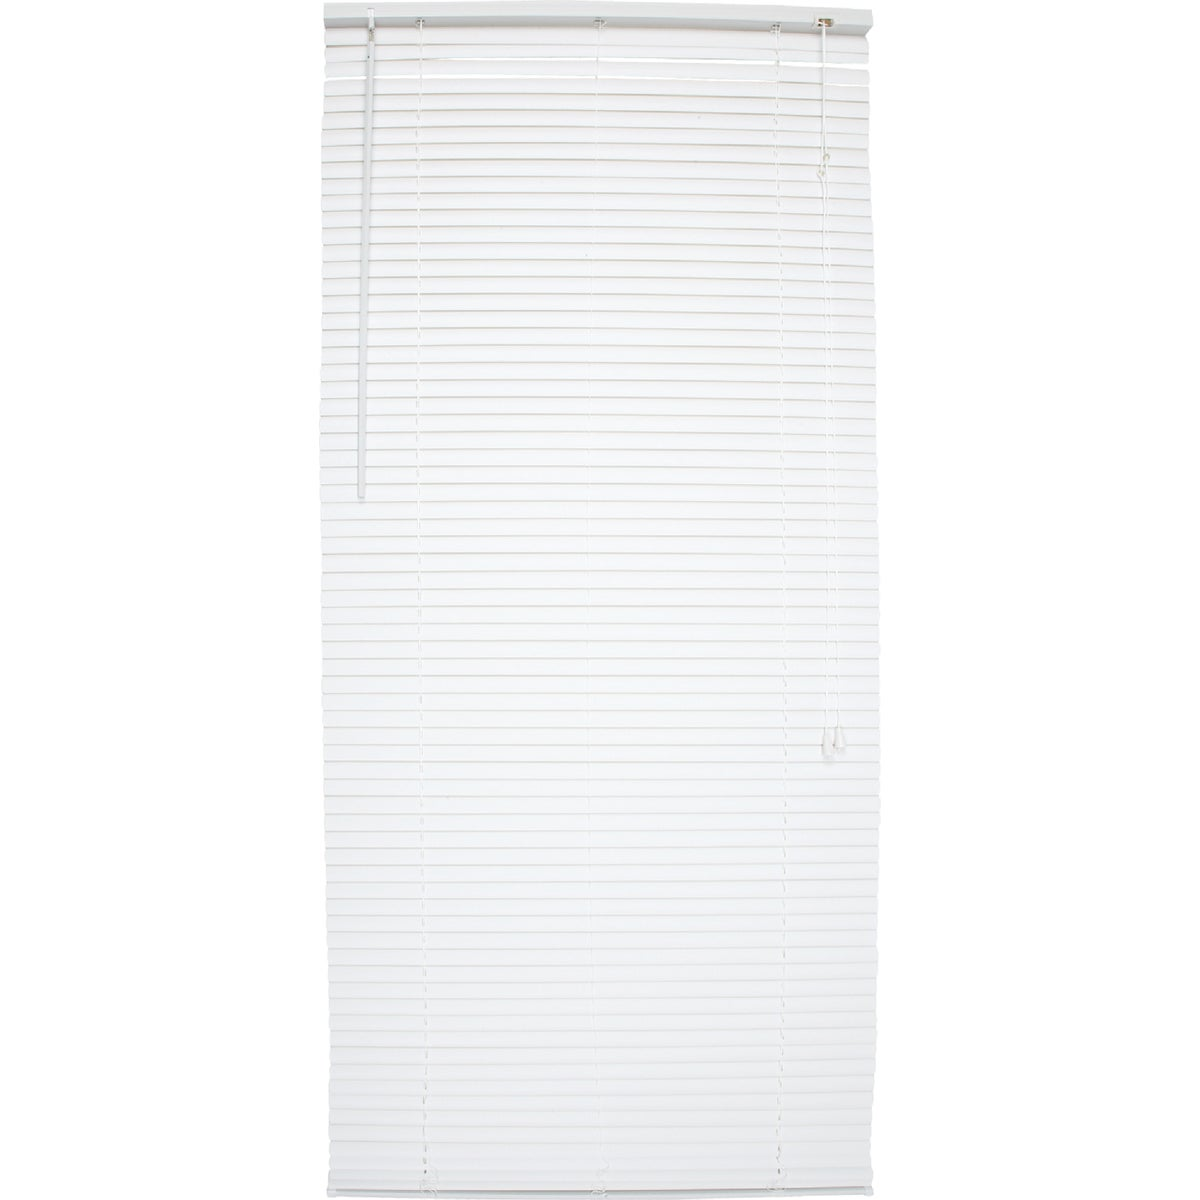 33X72 WHITE MINI BLIND - 615145 by Lotus Wind Incom